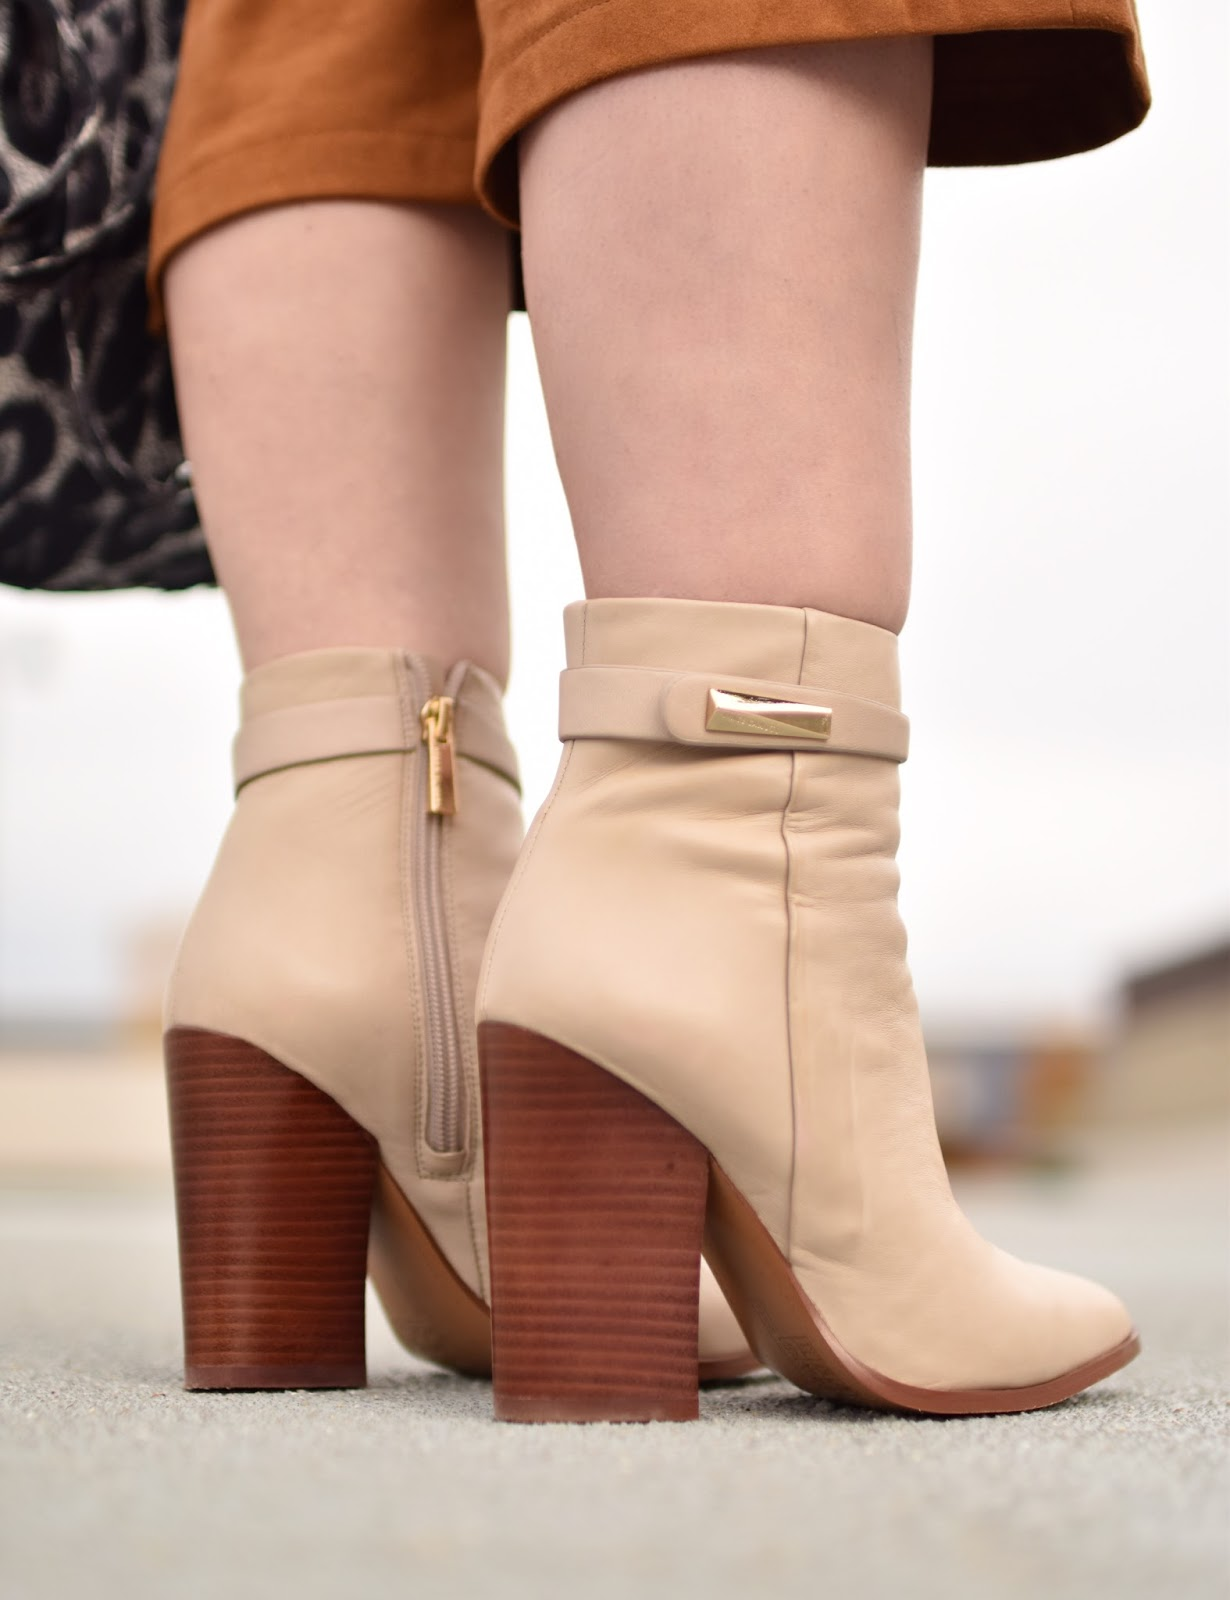 Outfit inspiration c/o Monika Faulkner - ivory Vince Camuto booties